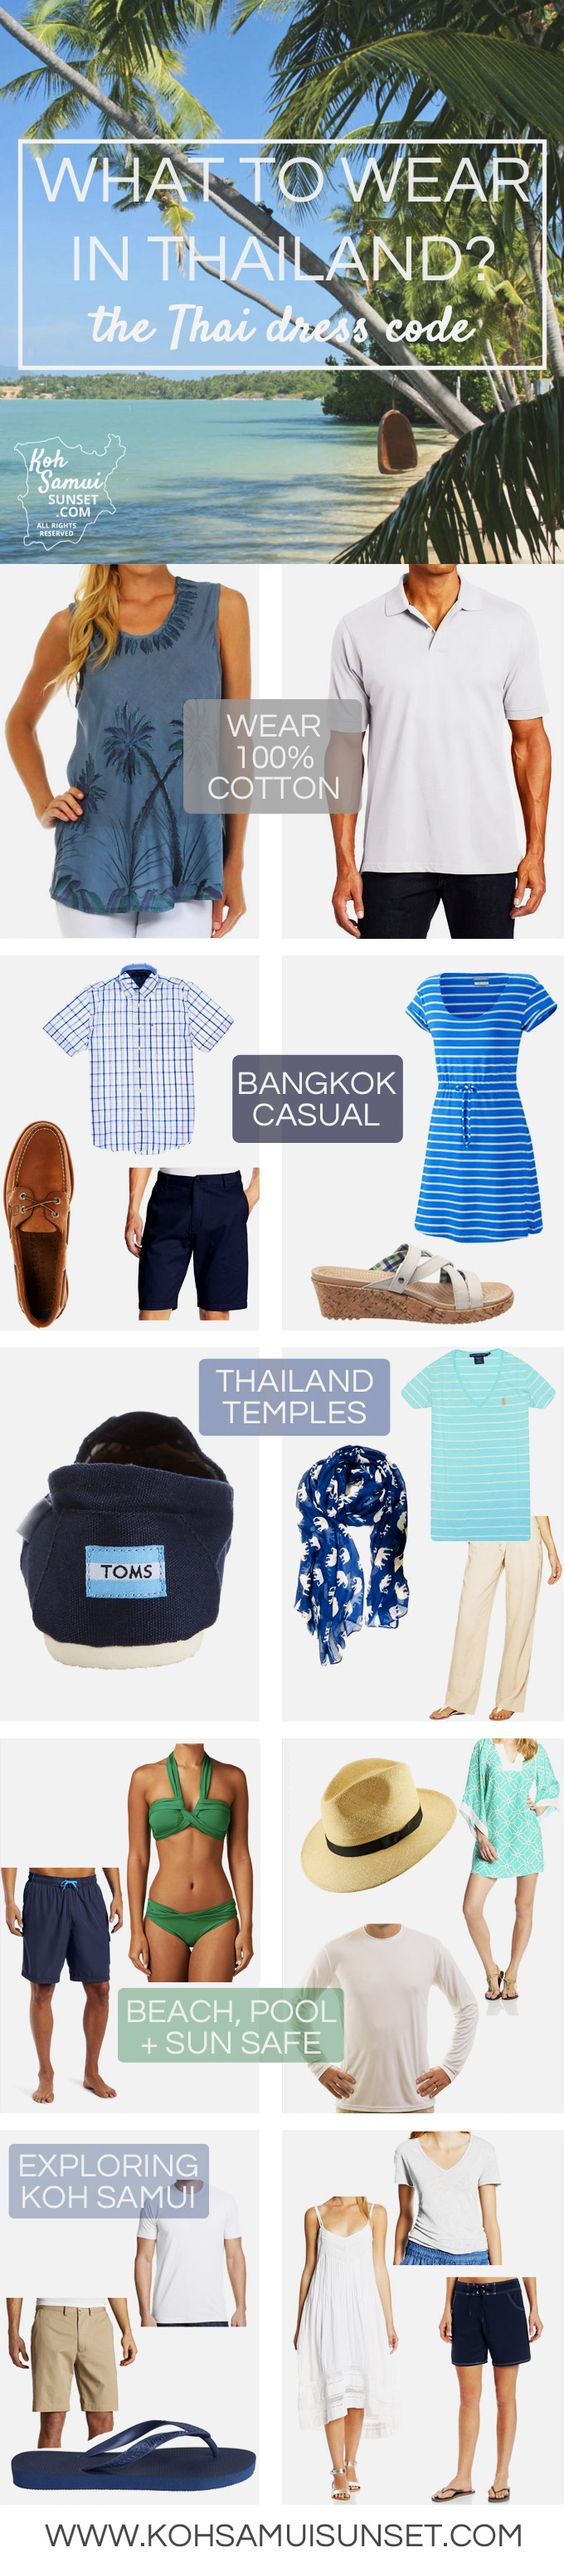 Grand Palace Dress Code Shoes